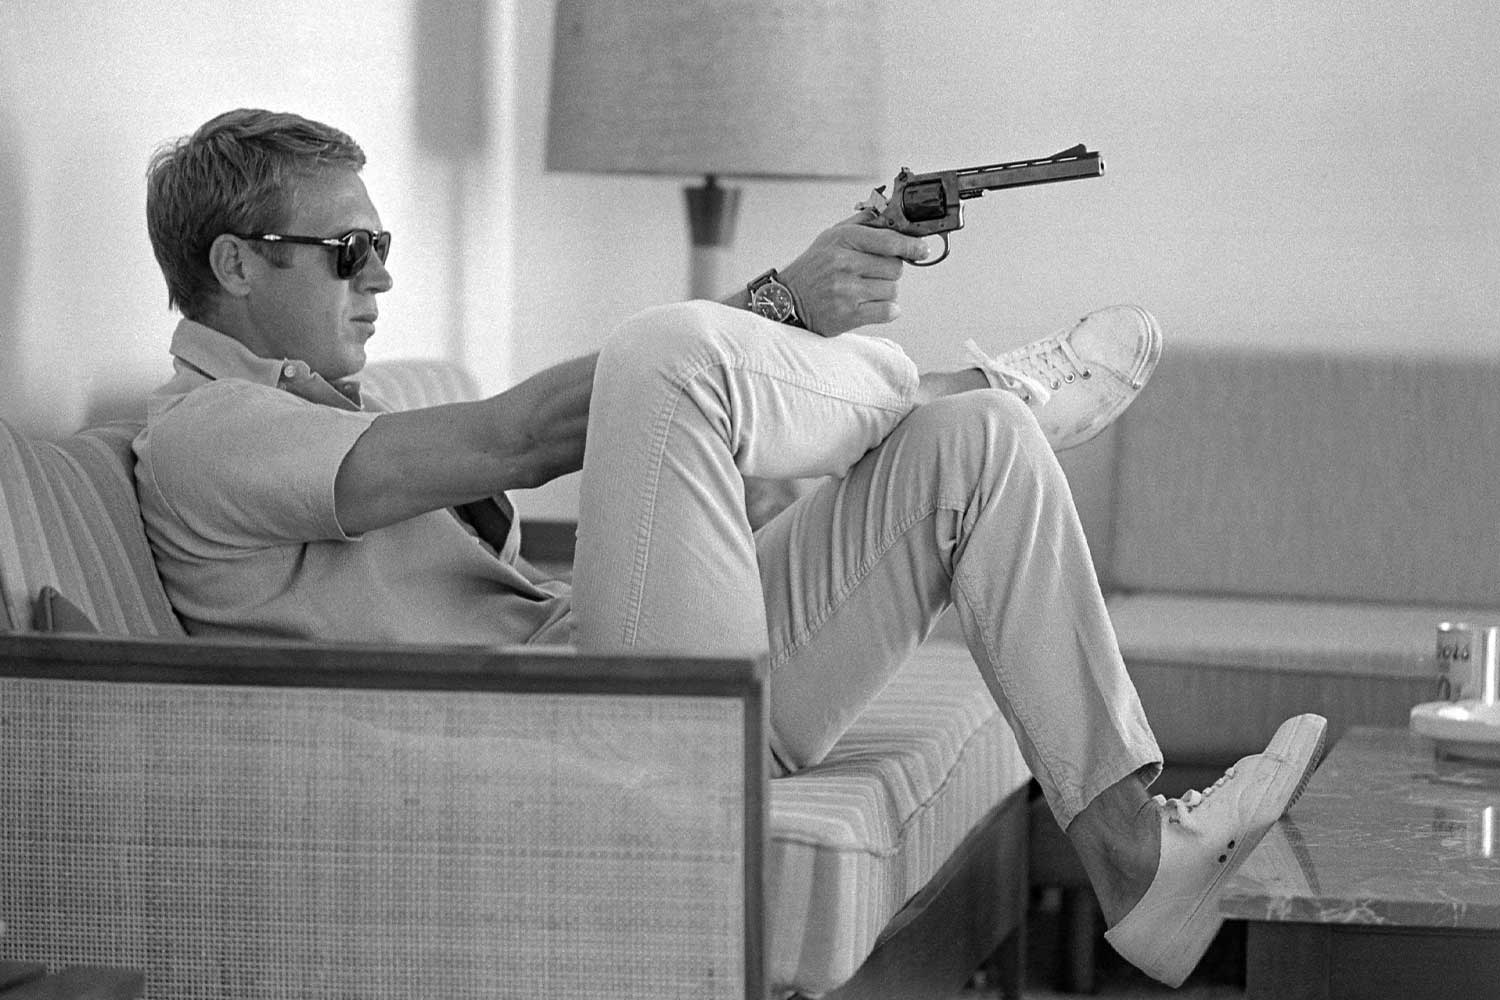 Profile view of Steve McQueen as he sits on a sofa in his home, sunglasses over his eyes, as he aims handgun, his wrist balanced on his crossed leg, Palm Springs, California, May 1963. (Photo by John Dominis/The LIFE Picture Collection via Getty Images)